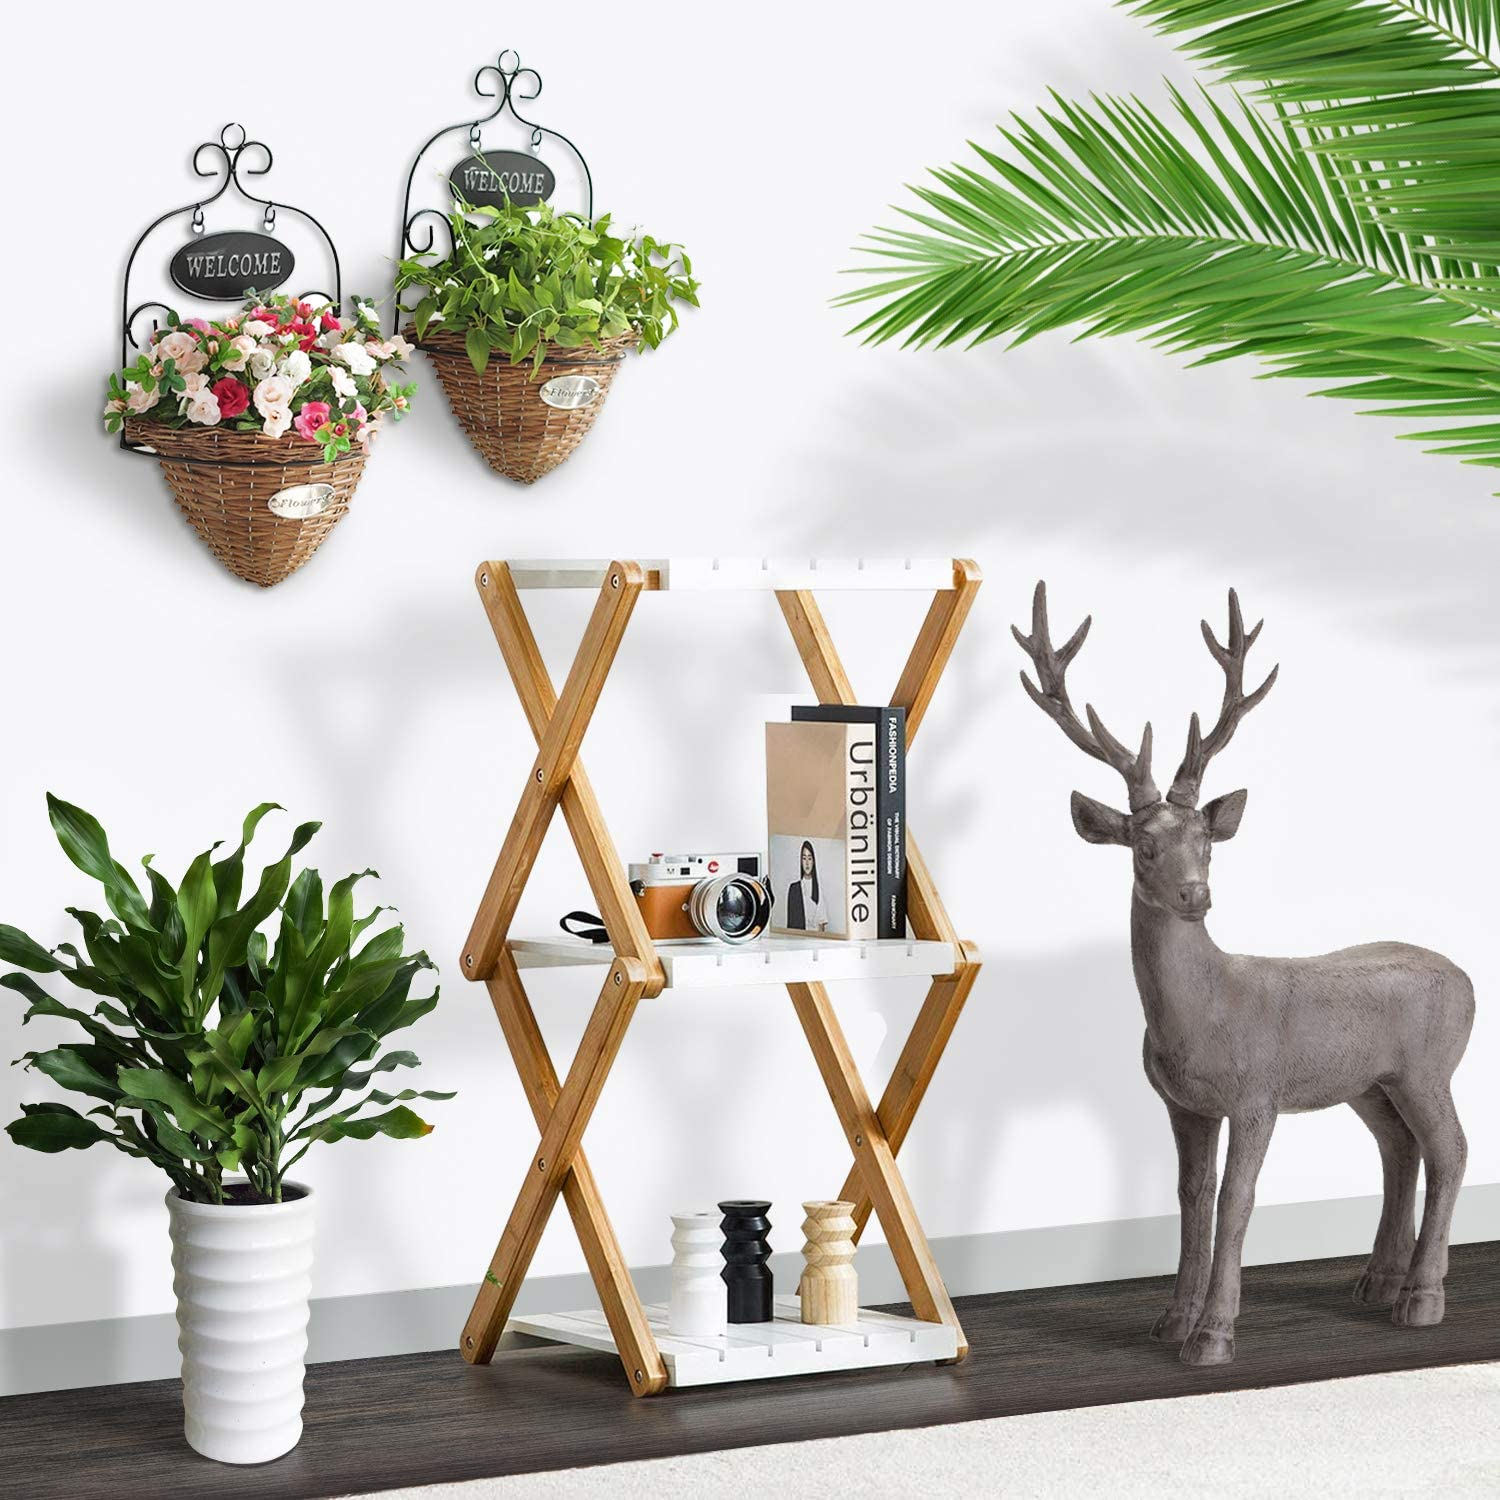 Nnewvante Shelving Unit Foldable Tiered Display Shelves Stand Bamboo Wood Open Storage Shelf Rack Slim Bookshelf Stand for Home Office White-3 Tier